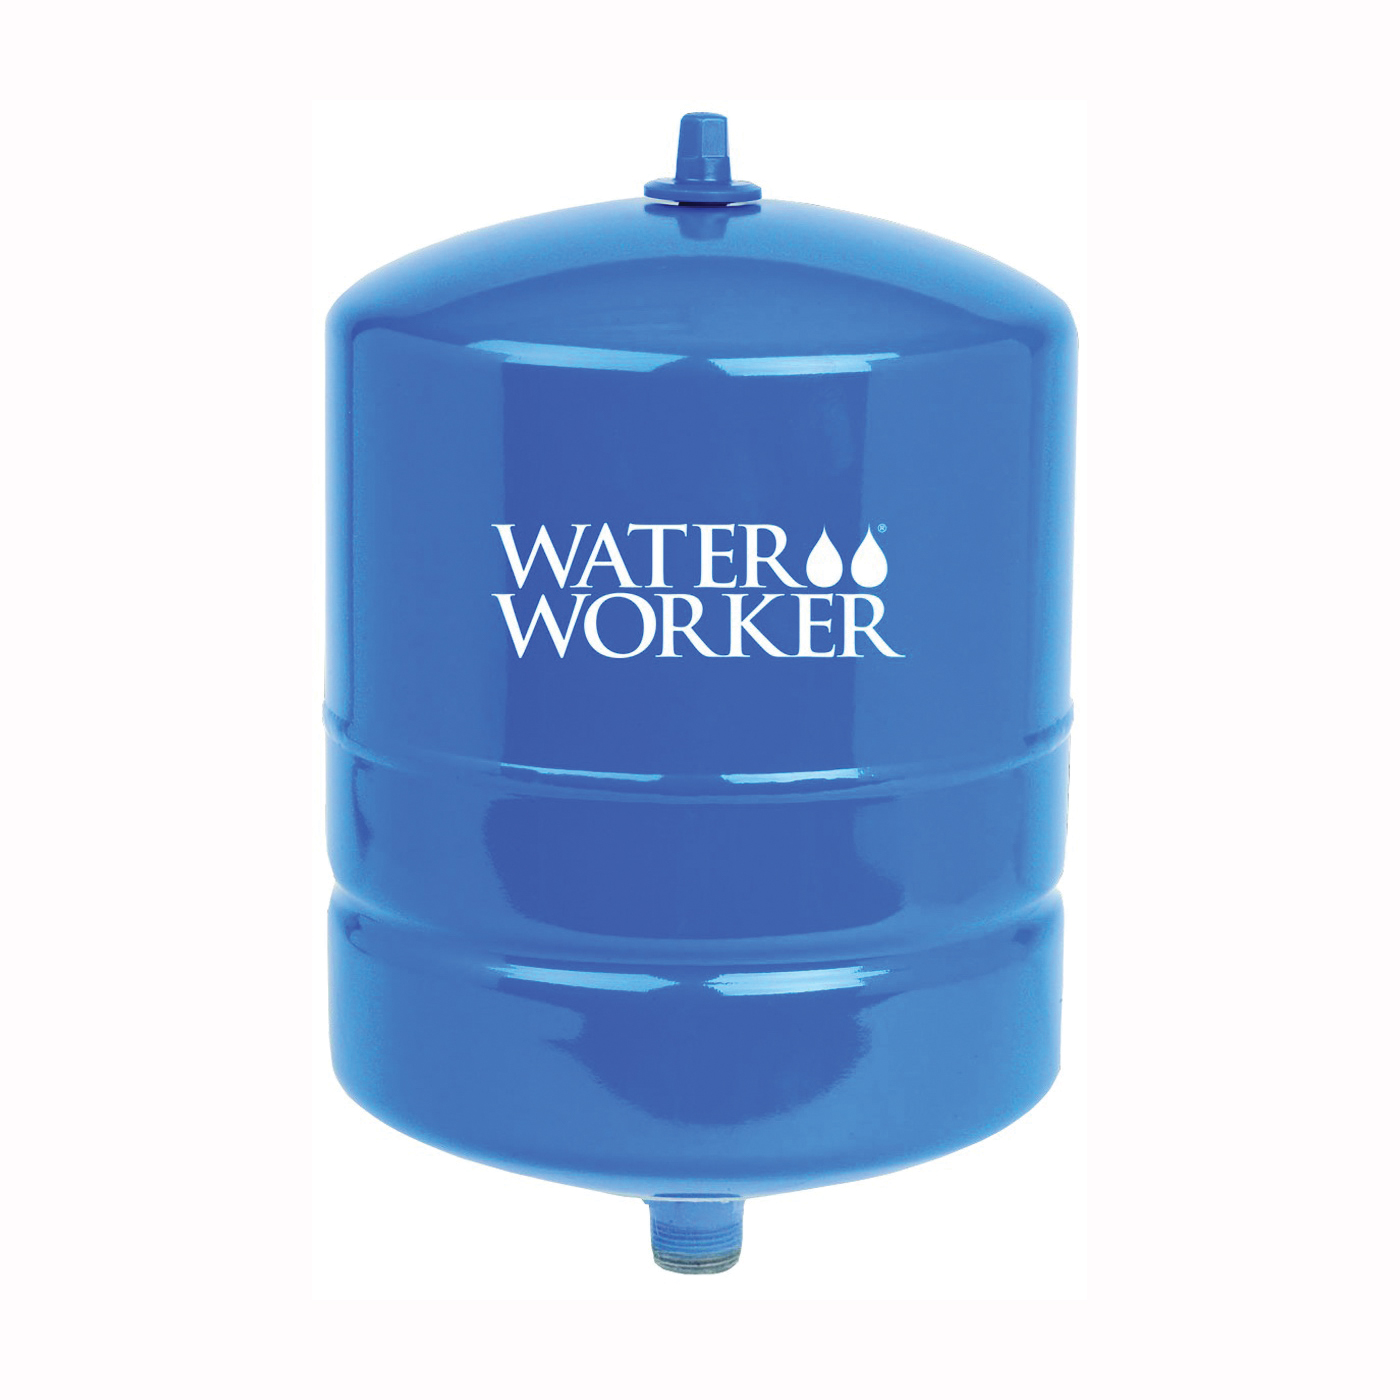 Picture of WATER WORKER HT-2B Well Tank, 2 gal Capacity, 100 psi Working, Steel